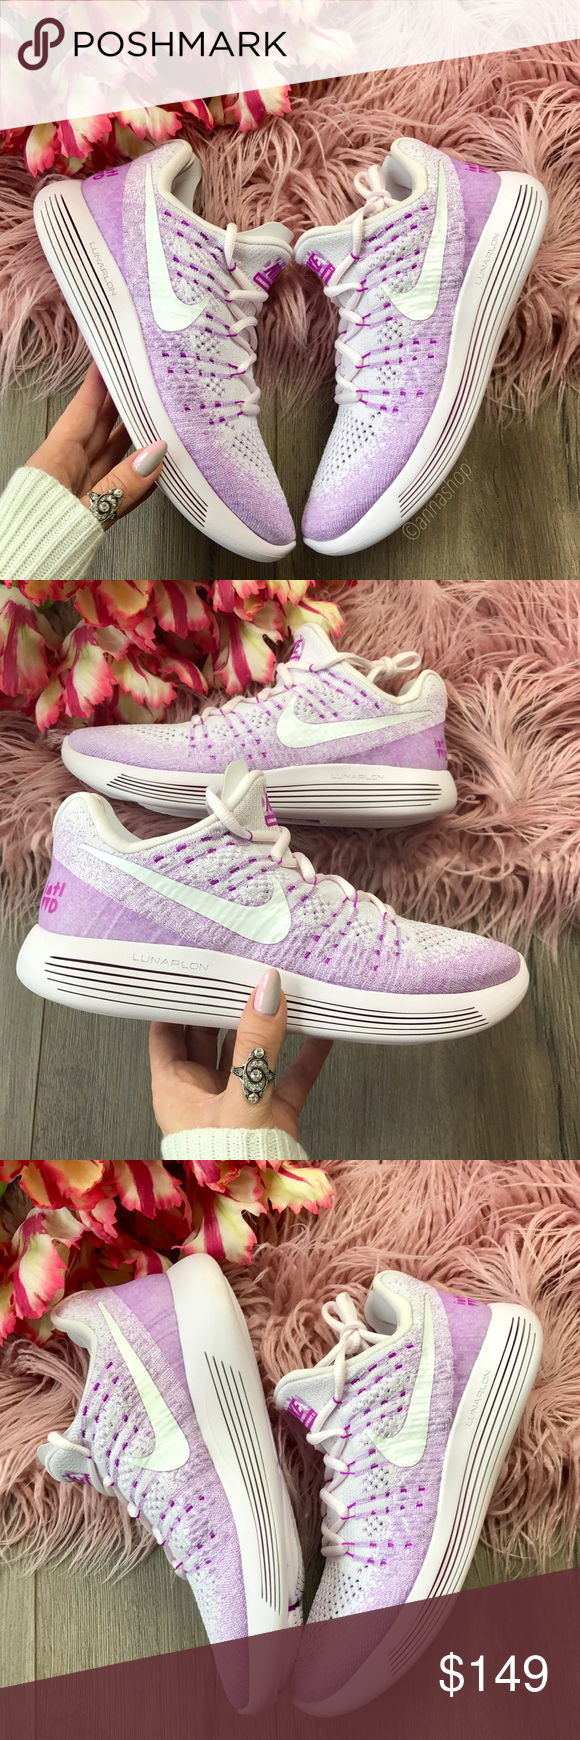 ec5411f4bd NWT Nike lunarepic low Flyknit 2 IWD rare limited Brand new with box ...